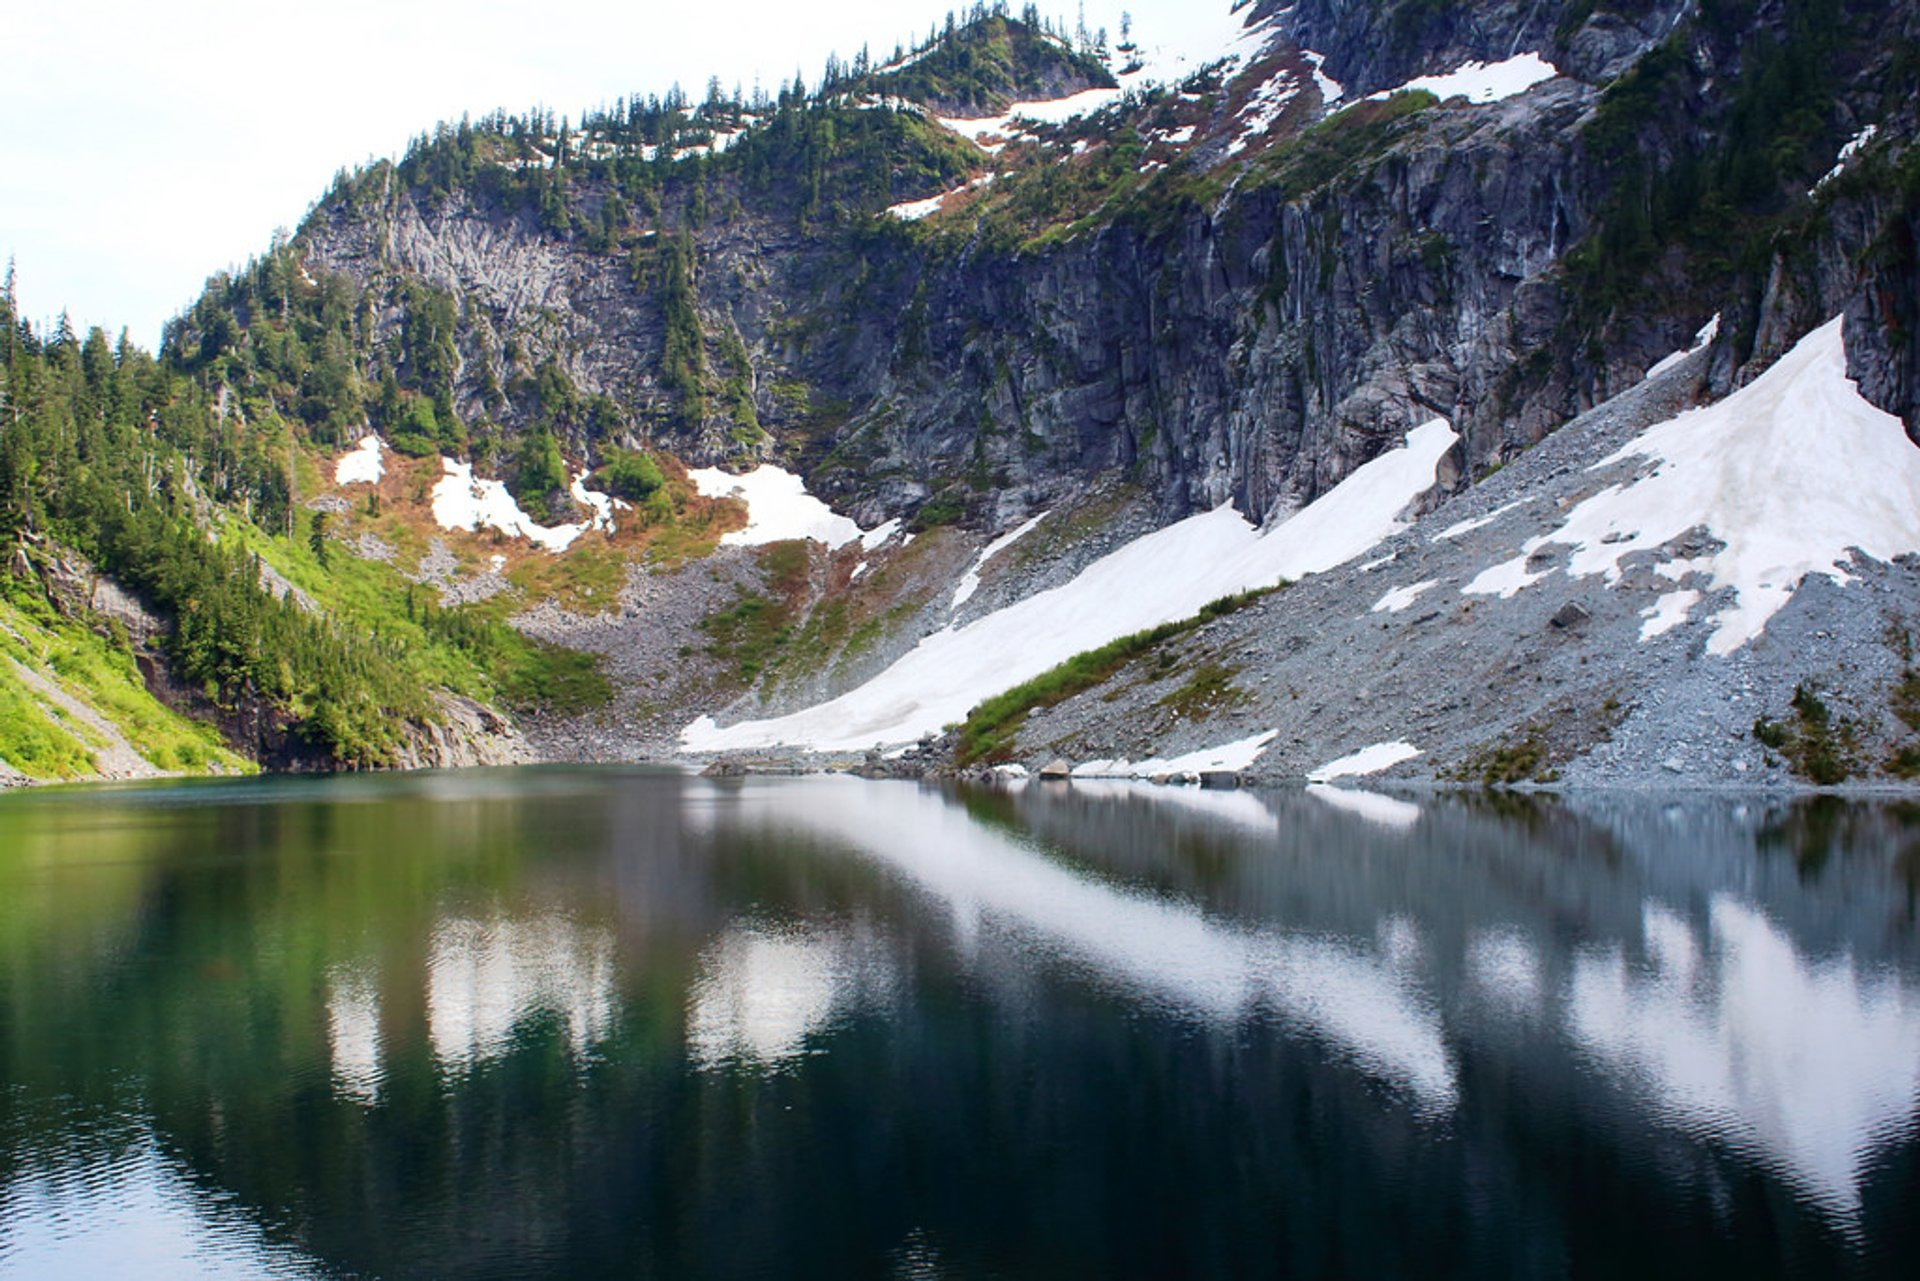 Lake Serene & Bridal Veil Falls in Seattle 2019 - Best Time